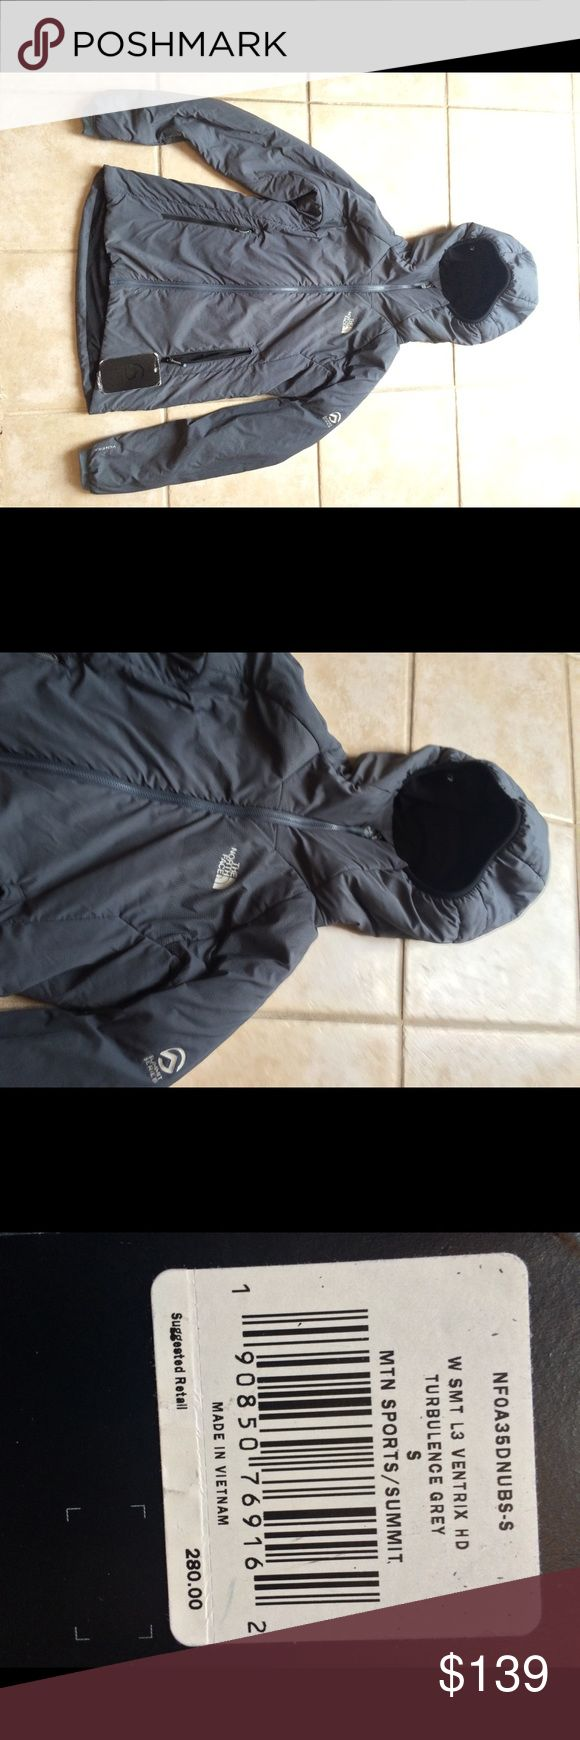 The North face women's puffer jacket The North face summit series women's jacket size small new with tags North Face Jackets & Coats Puffers